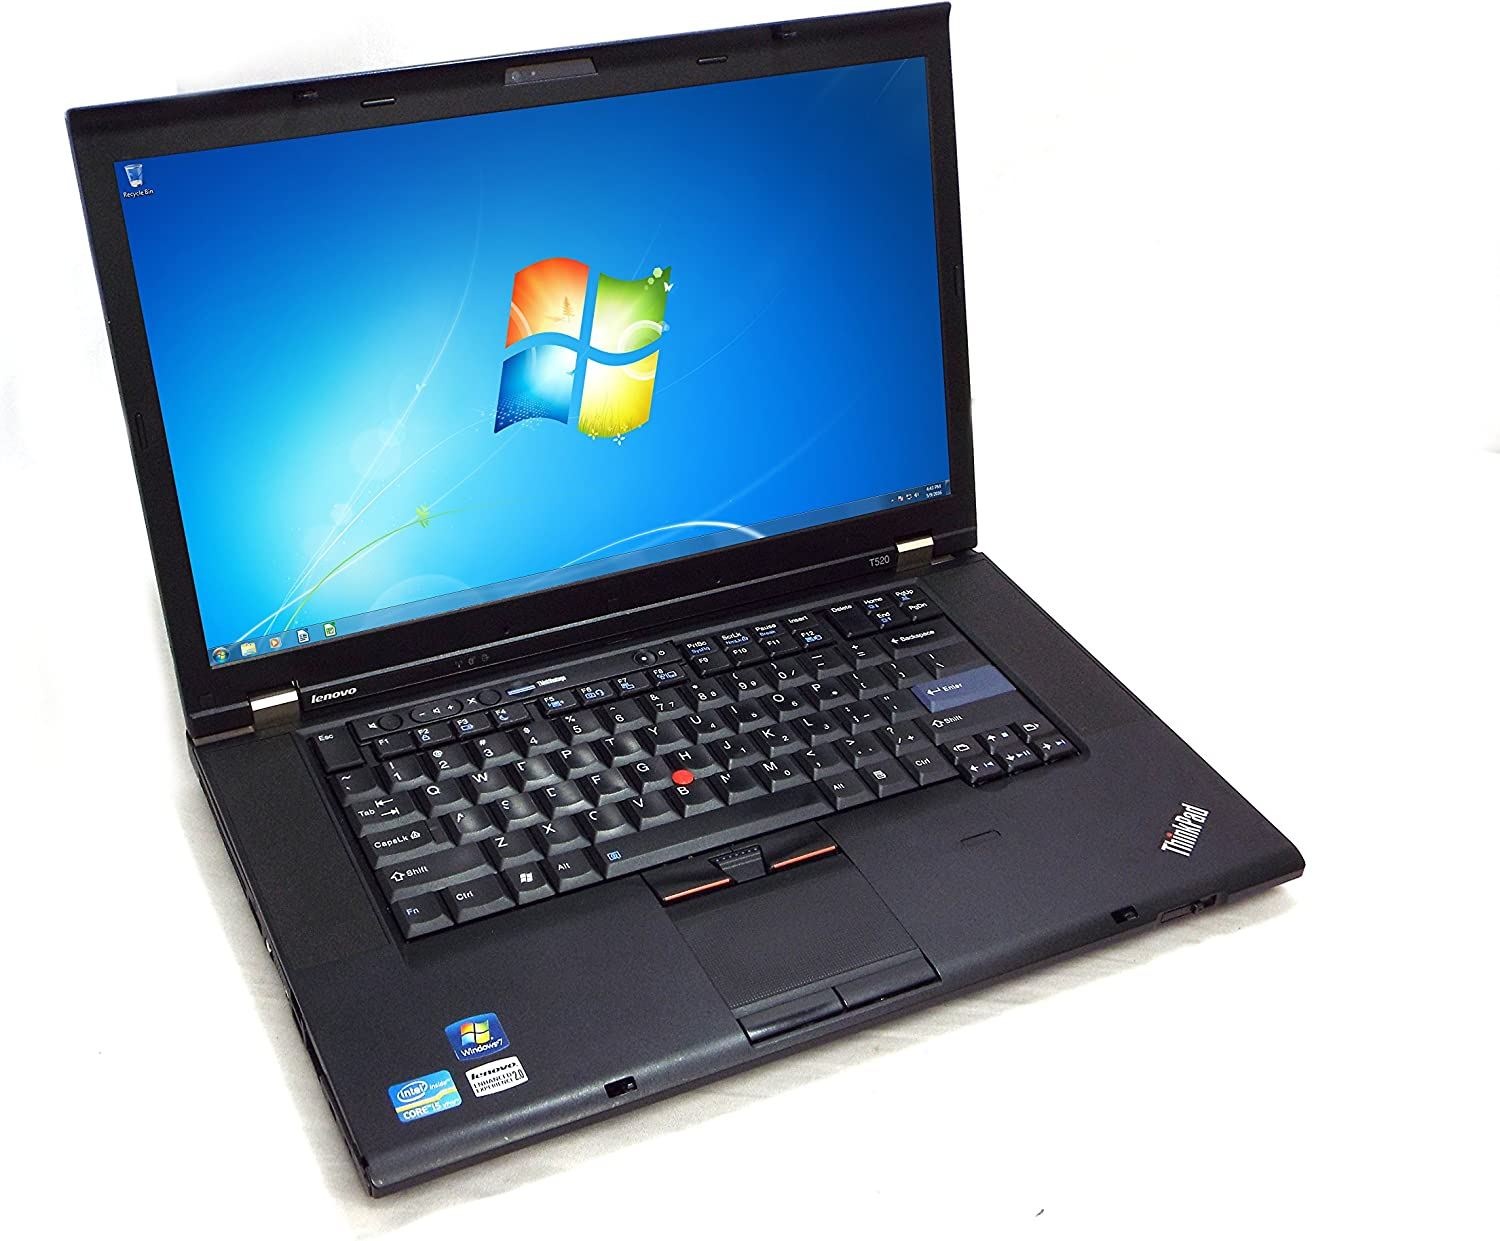 "Lenovo ThinkPad T520 15.6"" Laptop – Intel Core i5-2520M 2.50GHz, 4GB DDR3, 320GB HDD"